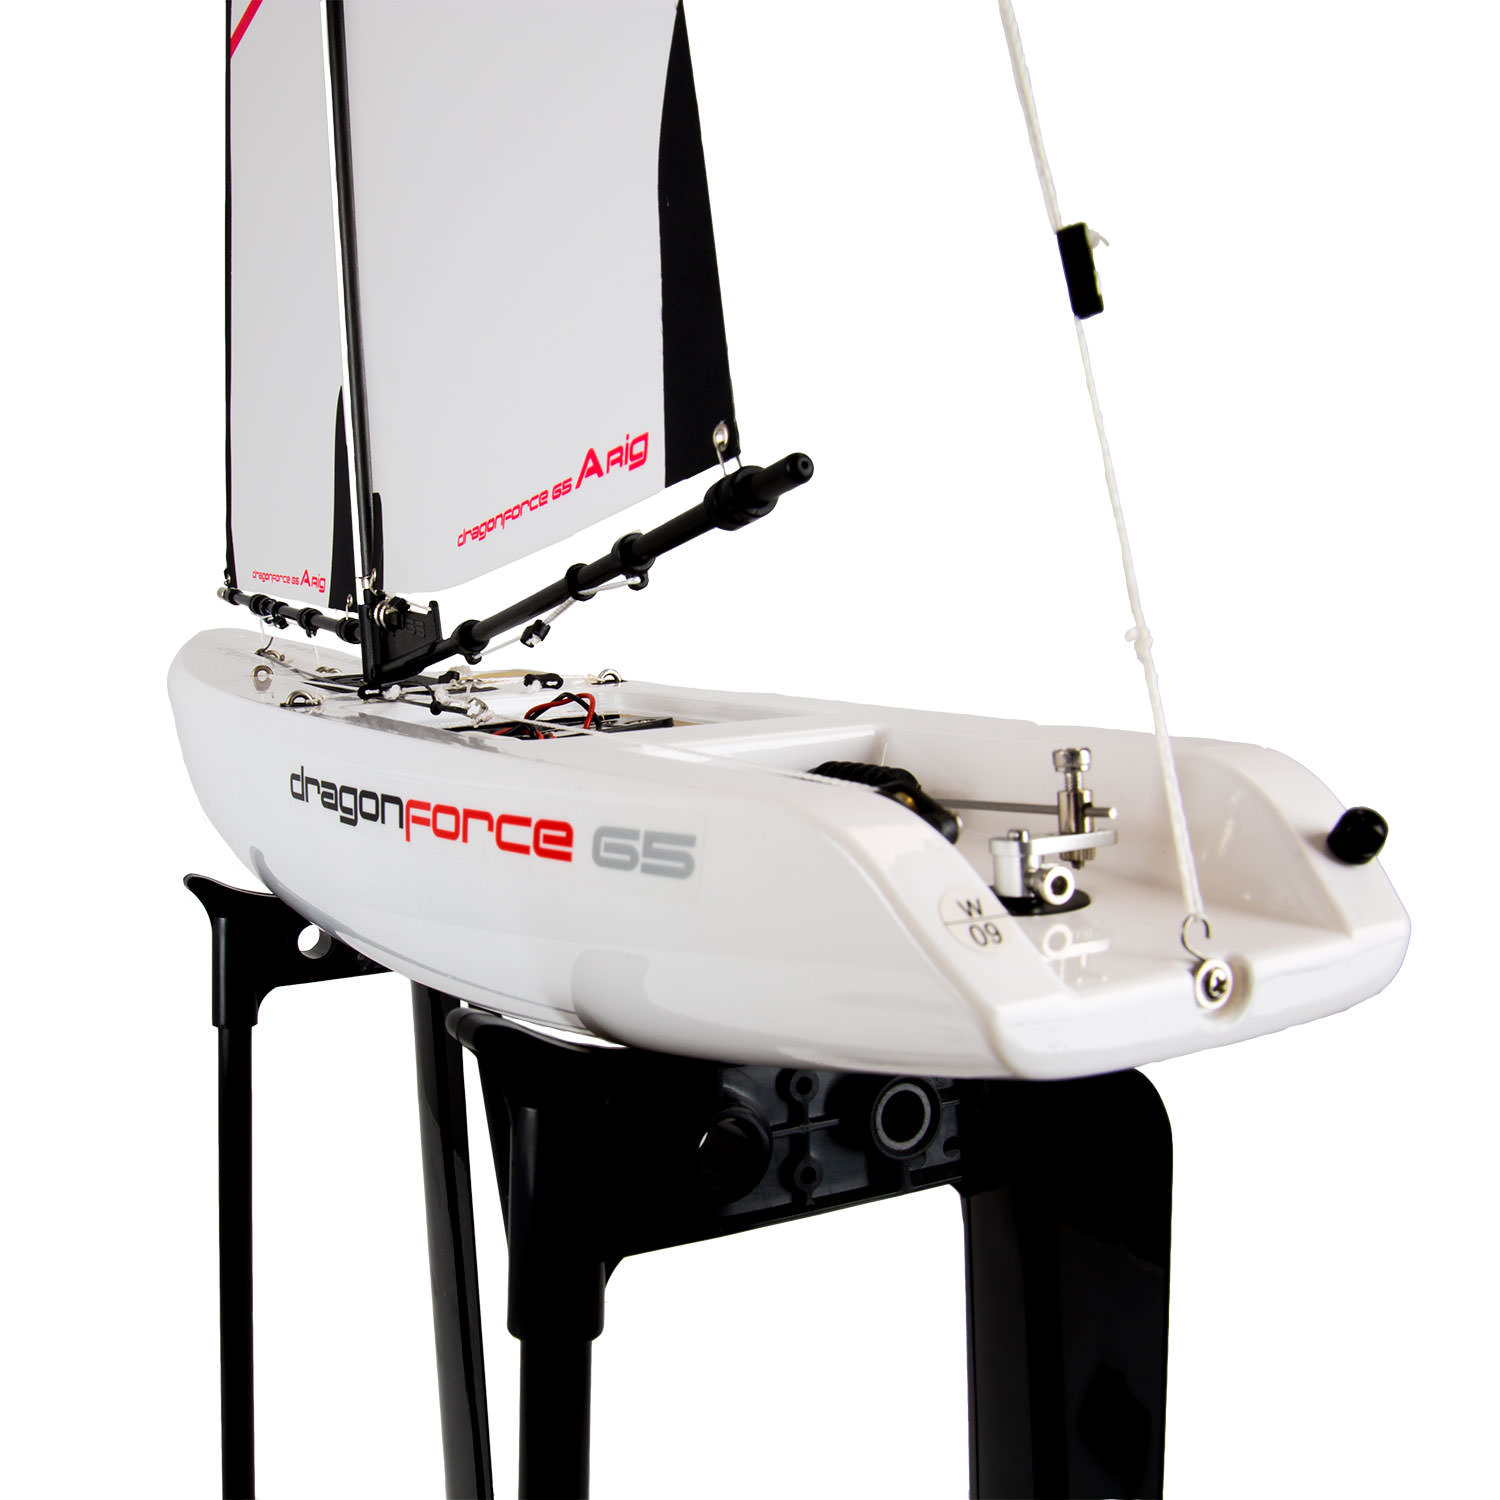 Joysway DragonForce 65 V6 2 4GHz RG65 Class DF65 RC Yacht - PNP (without  Transmitter or Receiver)